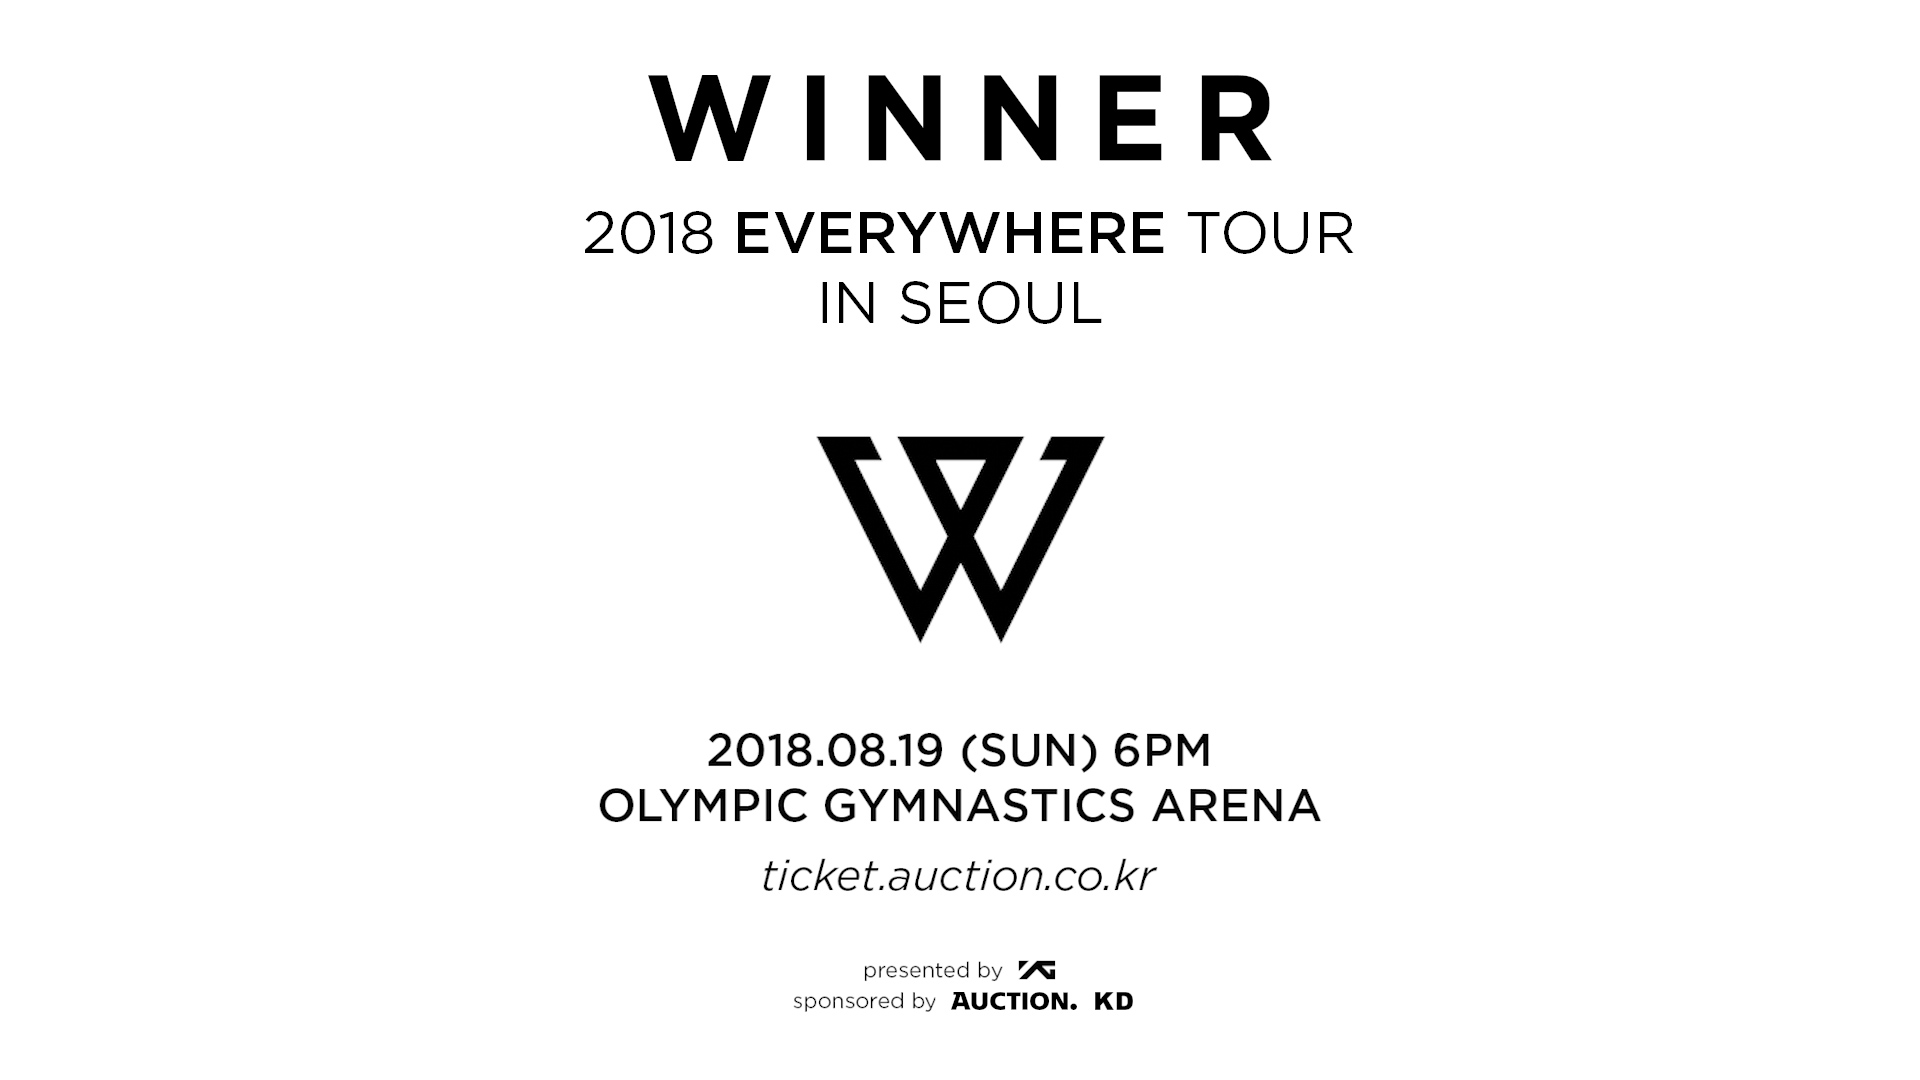 WINNER - 'EVERYWHERE TOUR' SPOILER